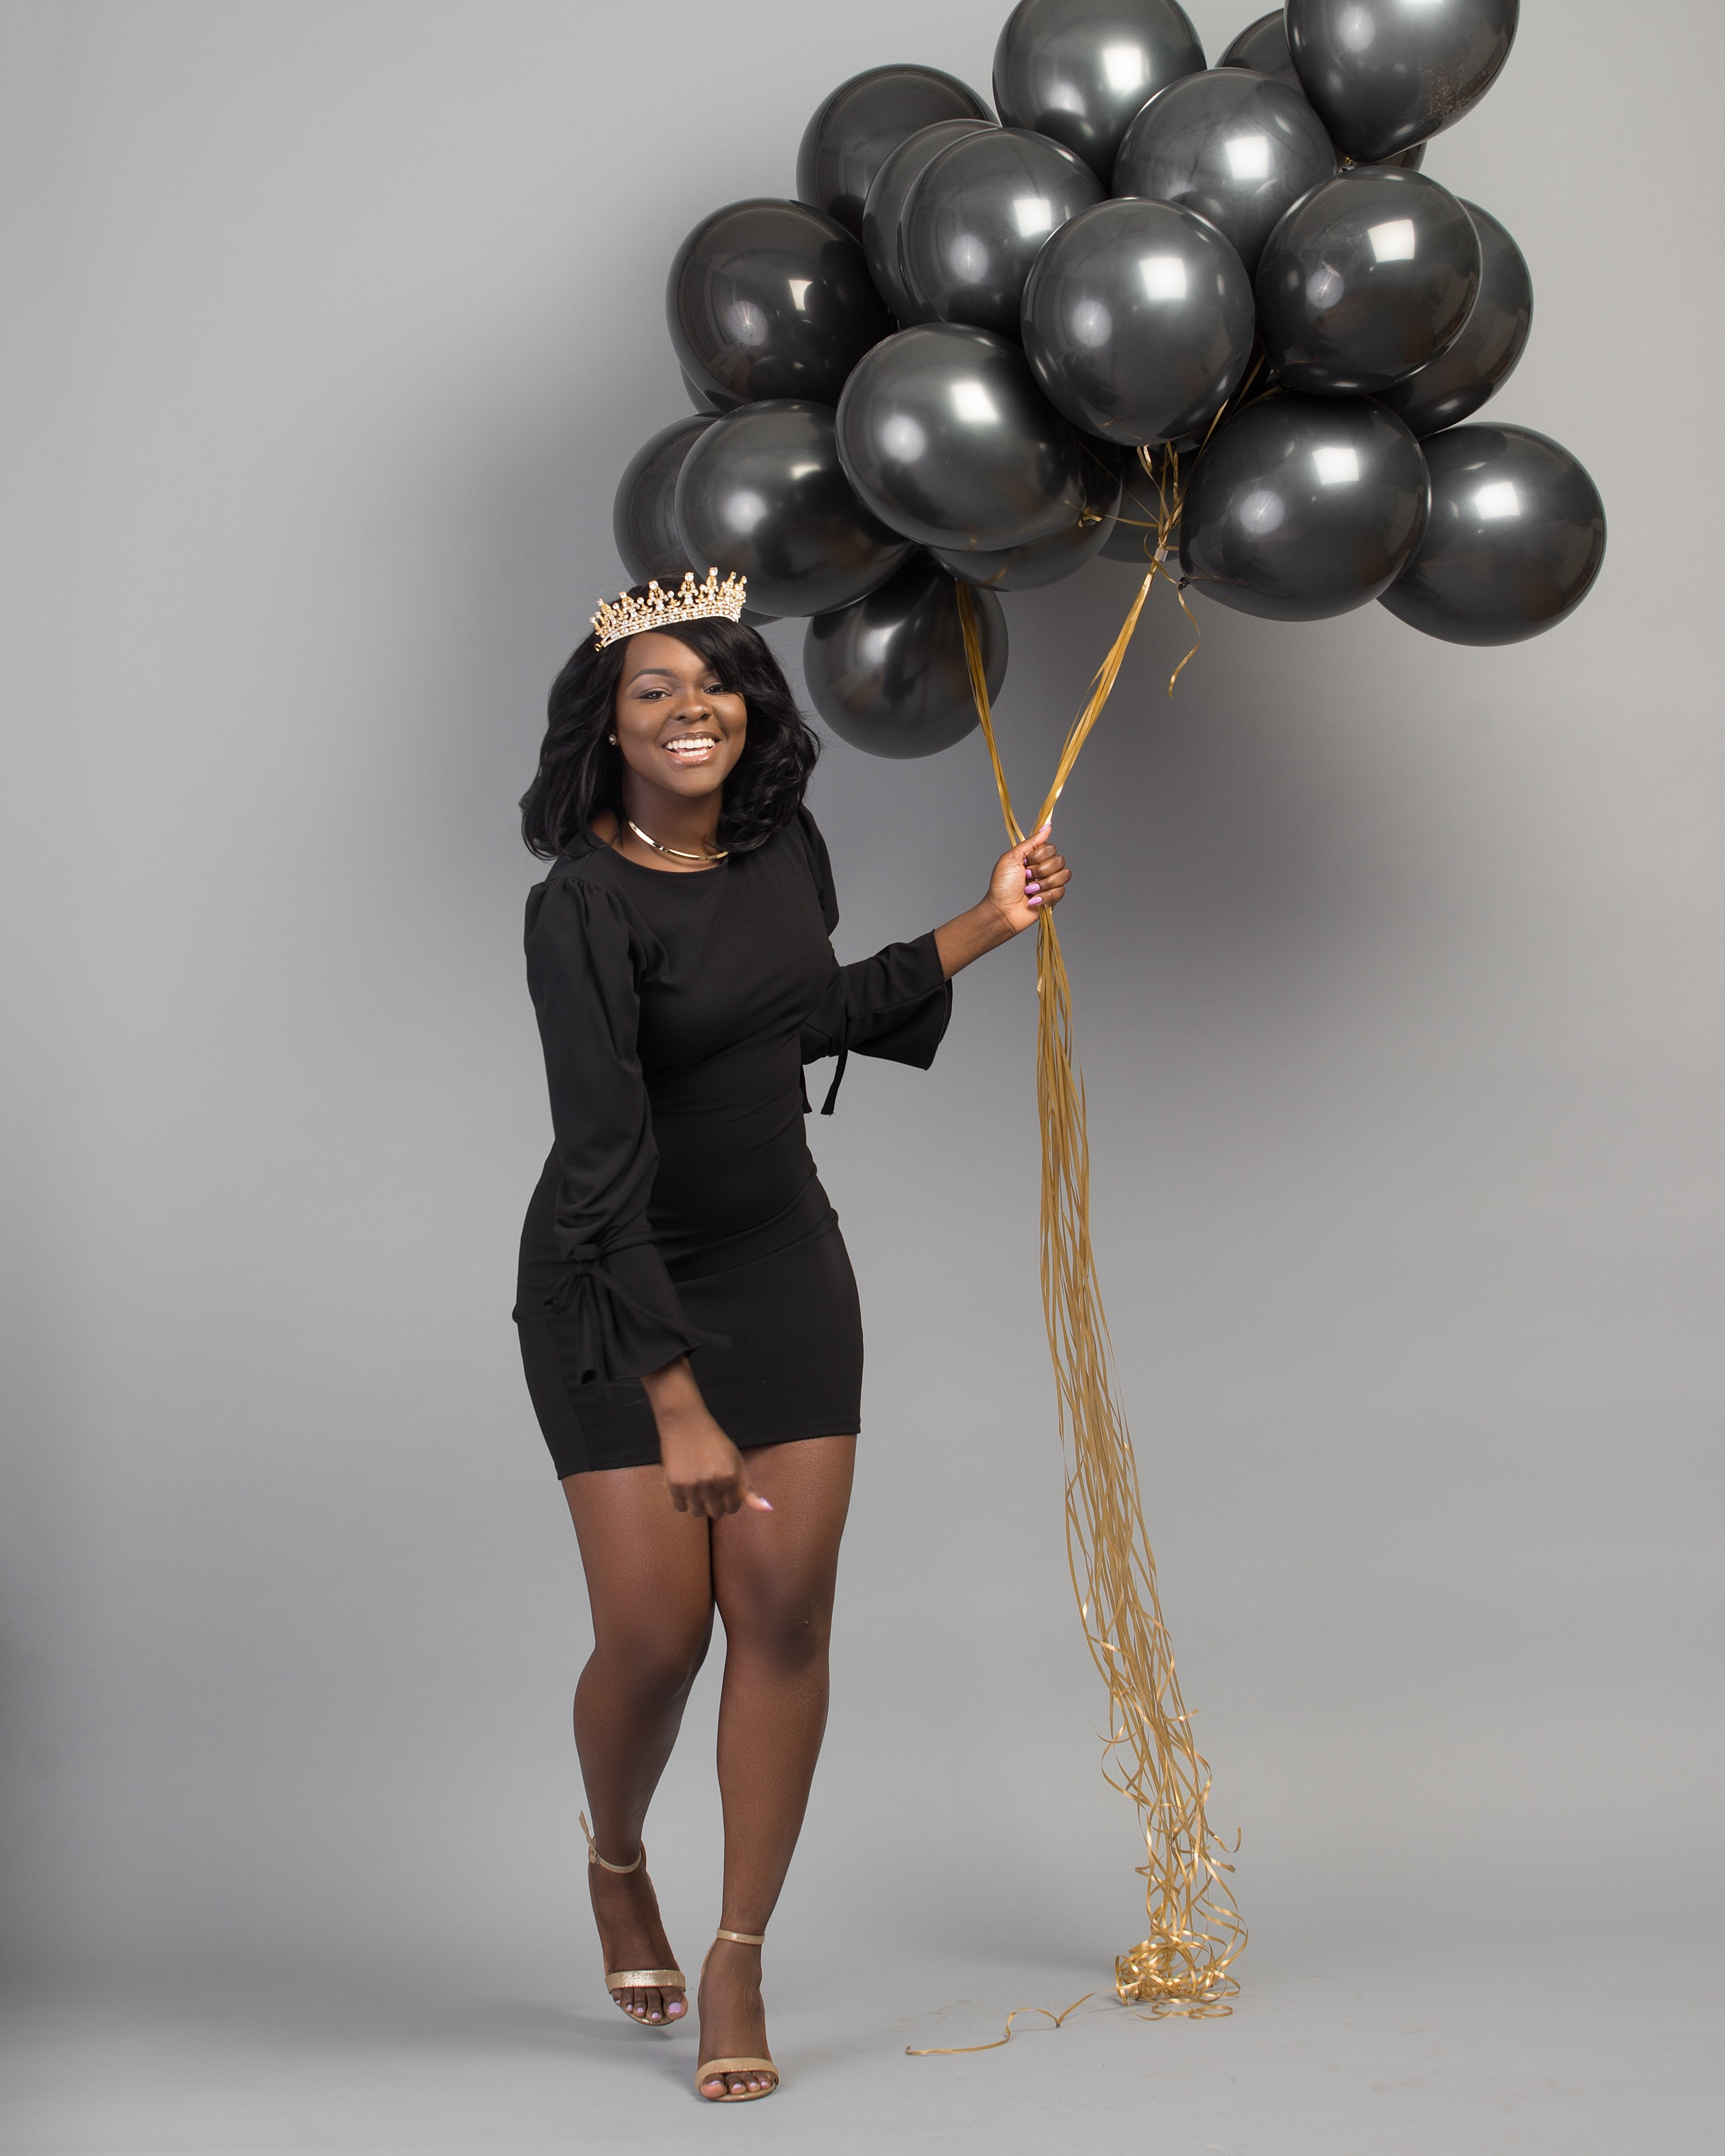 10 Stylish Photo Shoot Birthday Party Ideas all black with a touch of gold 25th birthday photoshoot my 25th